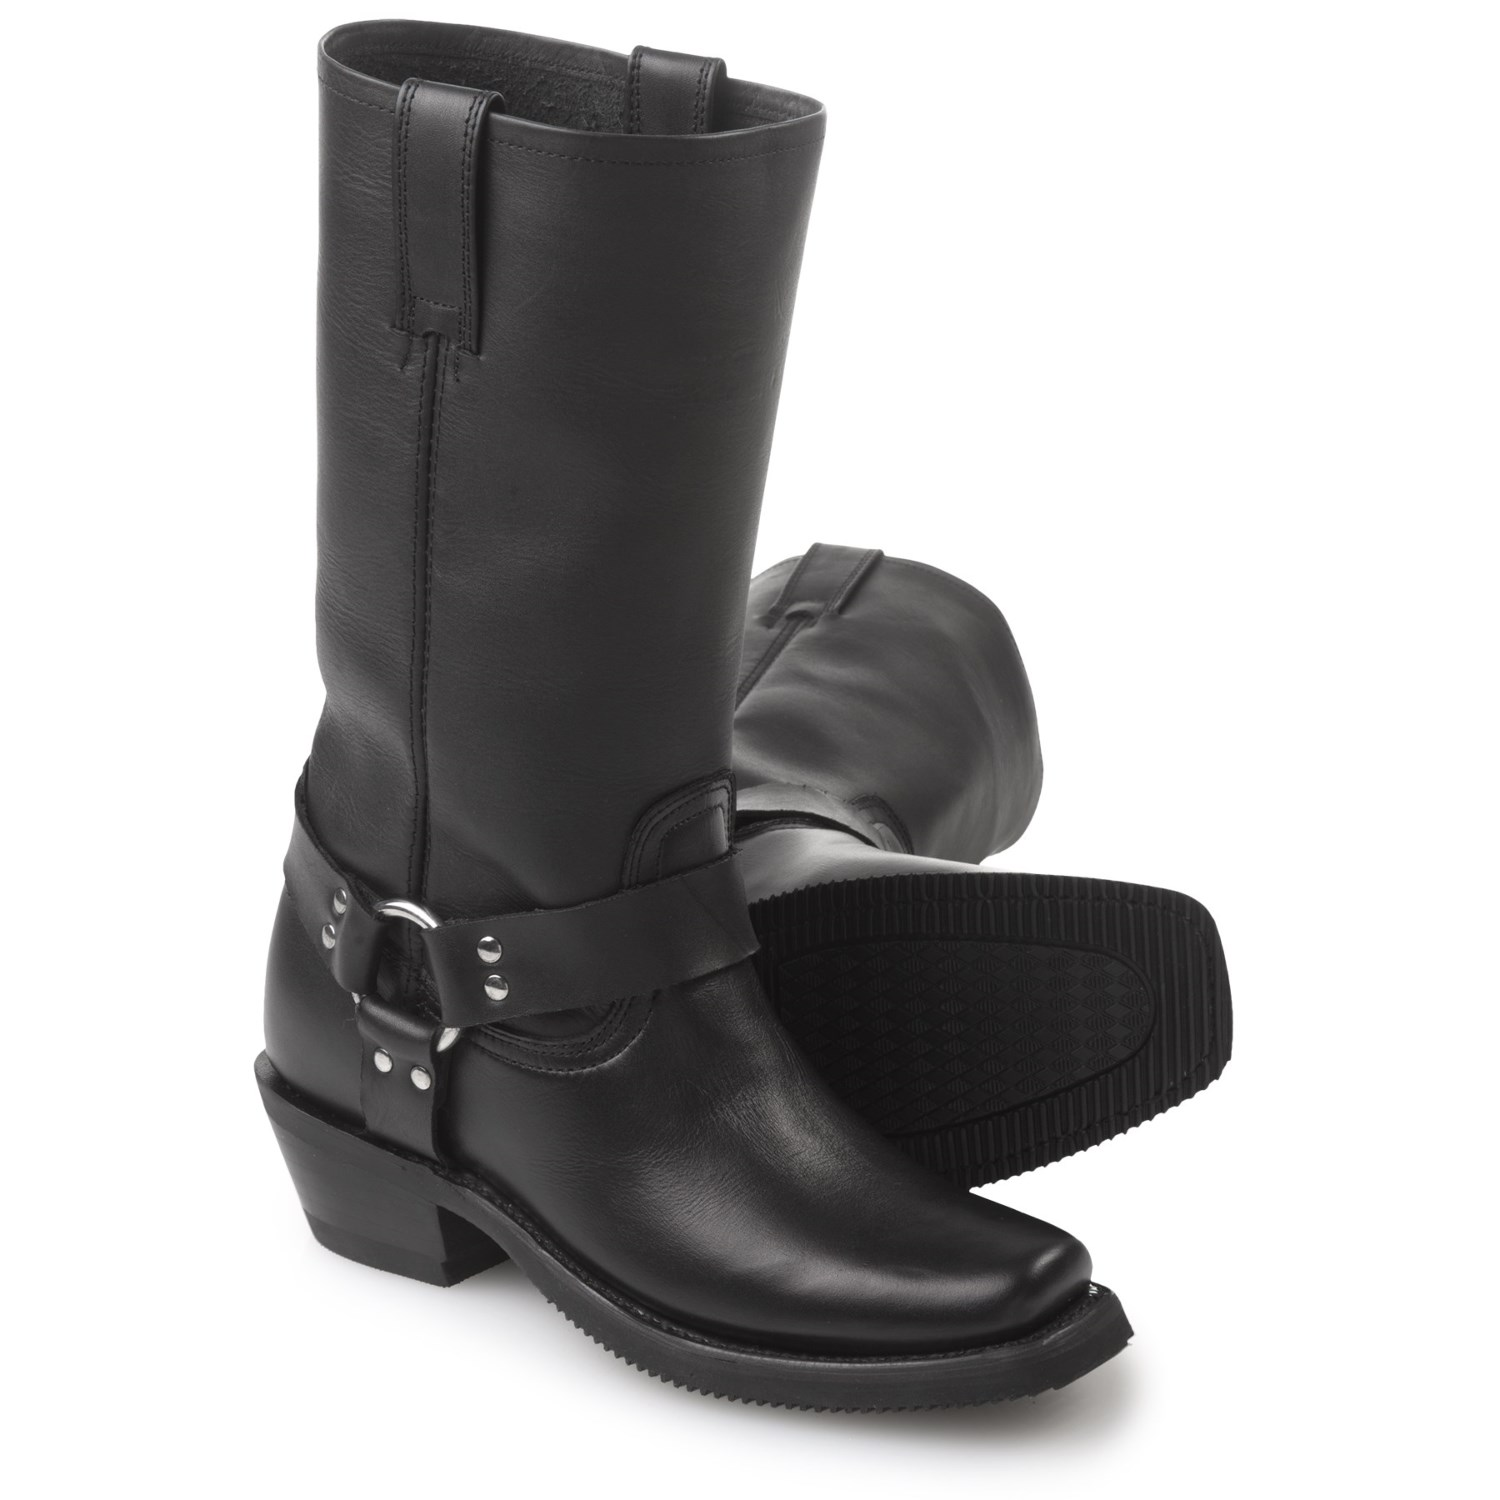 FM 1101 Harness Boots (For Wo) - Save 53%